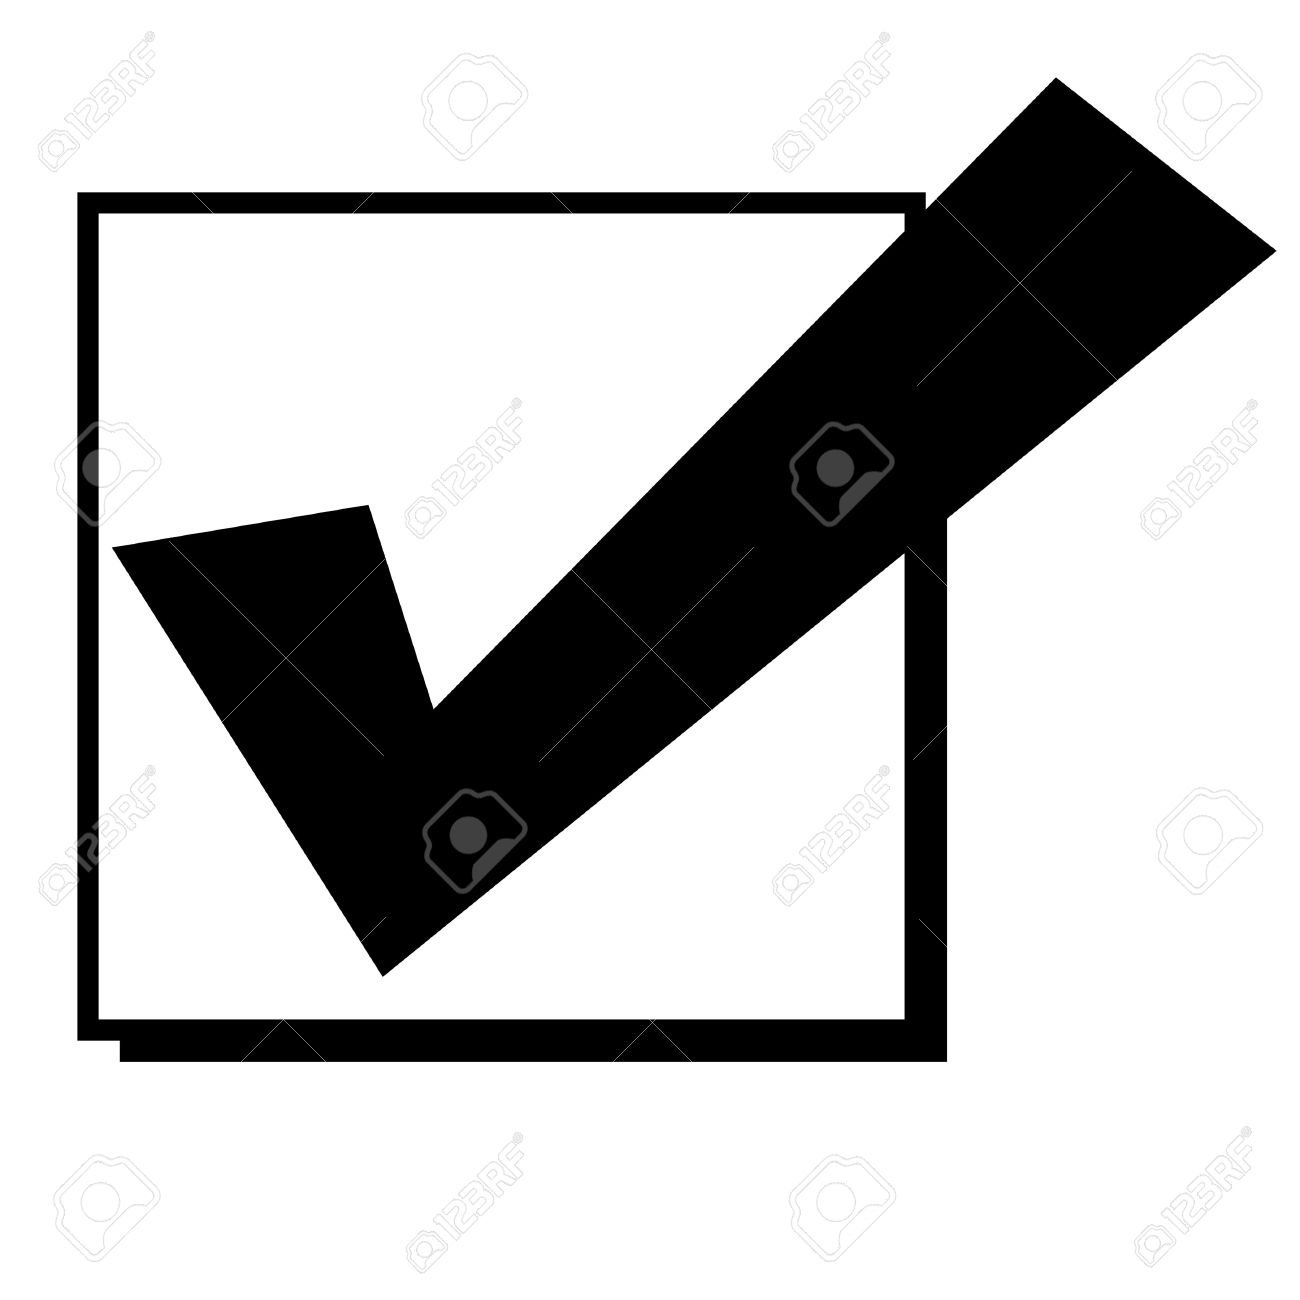 Black silhouetted tick or check mark in box isolated on white black silhouetted tick or check mark in box isolated on white background stock photo biocorpaavc Image collections